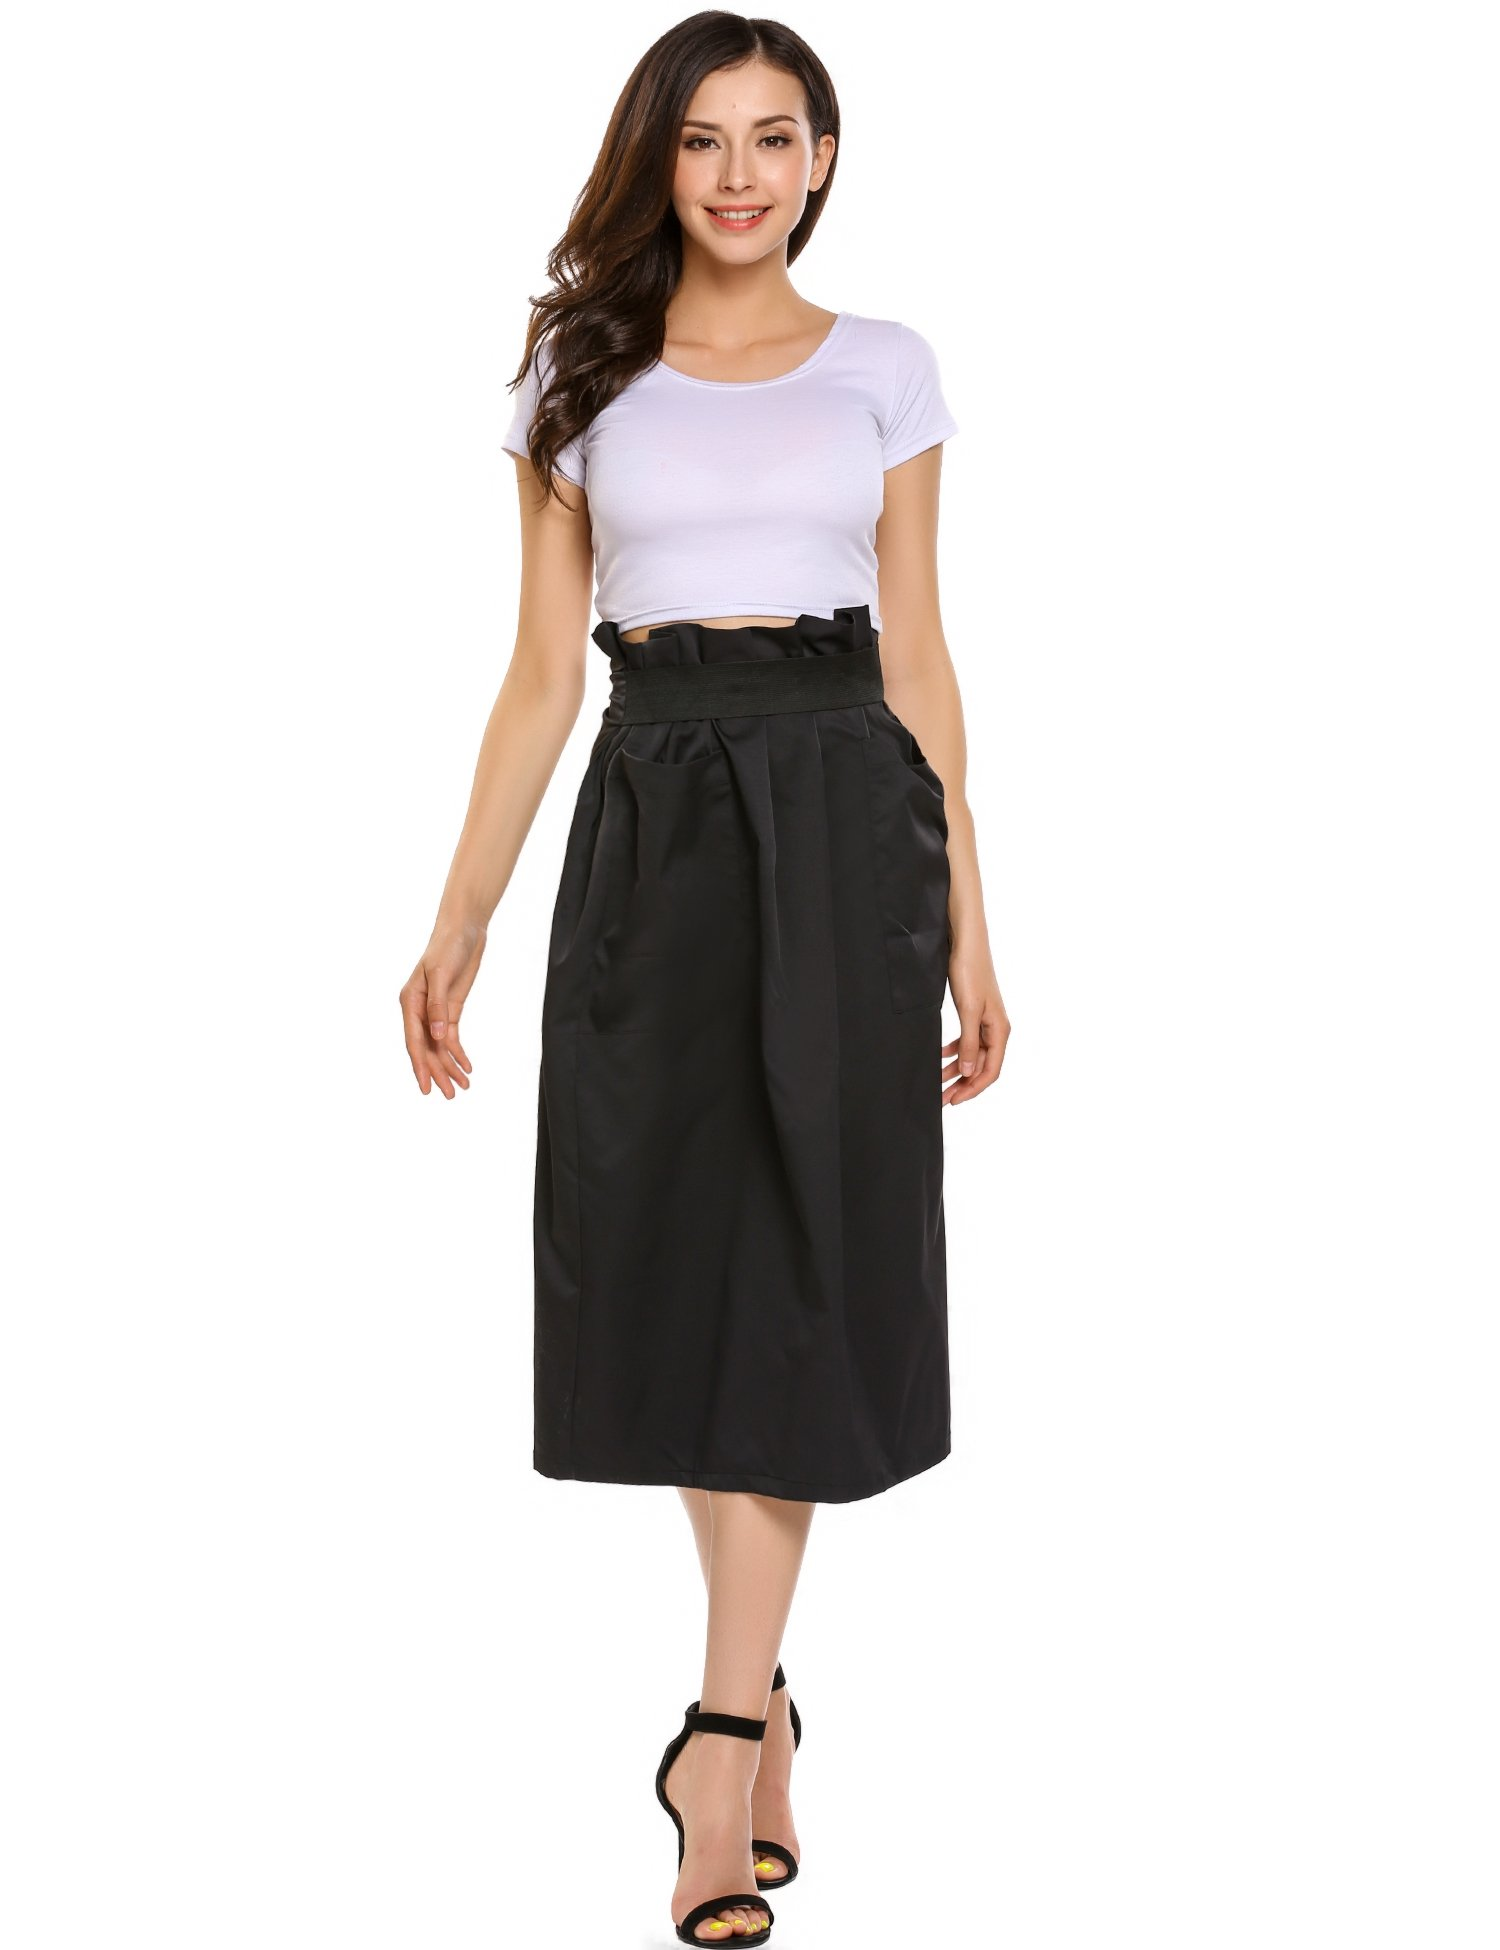 Women Casual High Waisted African A Line Maxi Long Skirt Black Small by Zeagoo (Image #1)